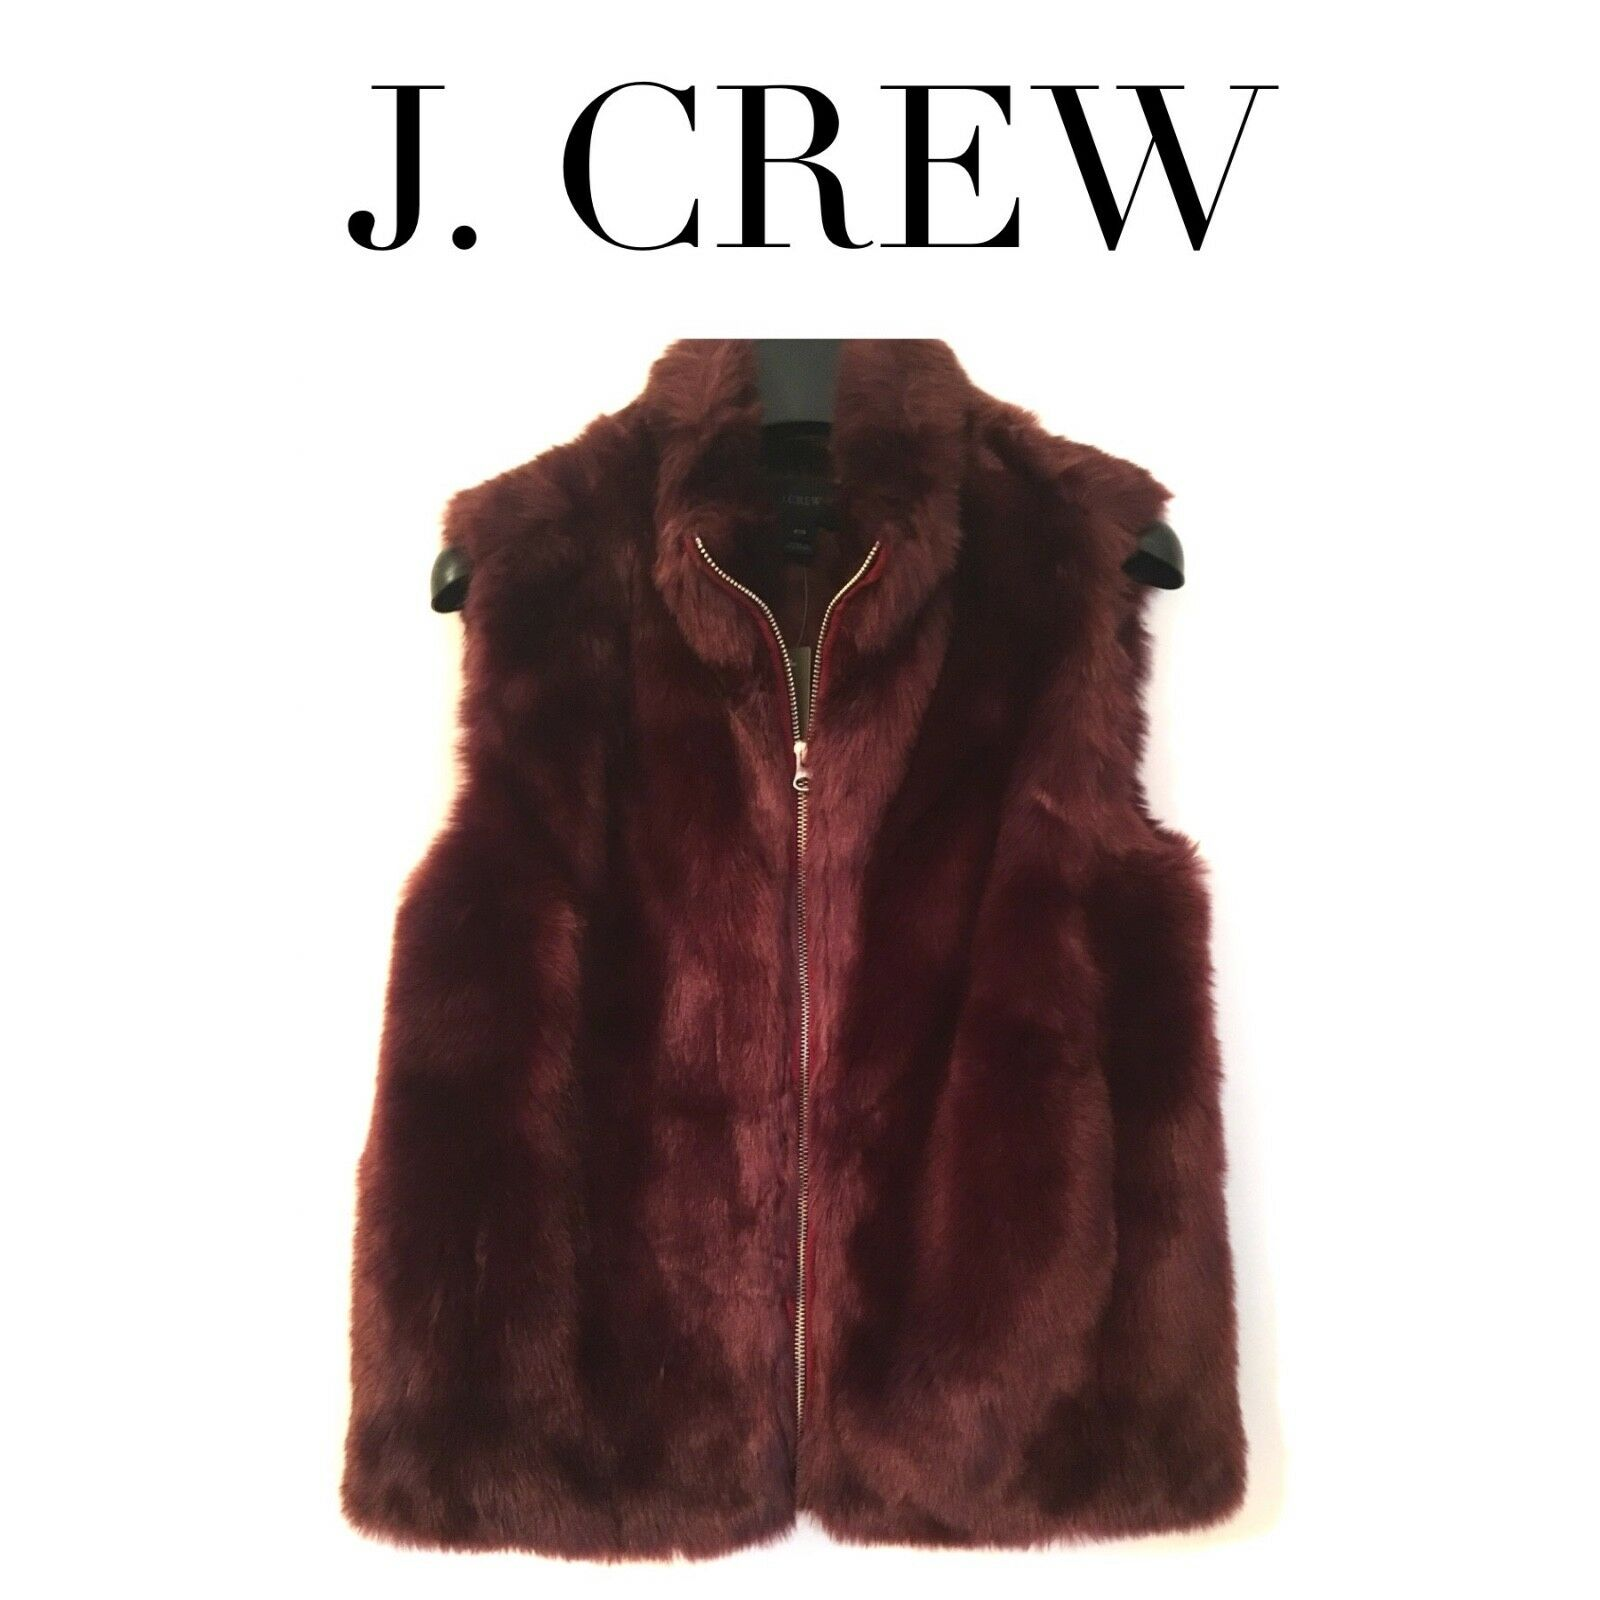 J CREW Faux Fur Vest Vivid Burgundy XS SMALL MEDIUM PETITE H0840 NEW SOLD OUT